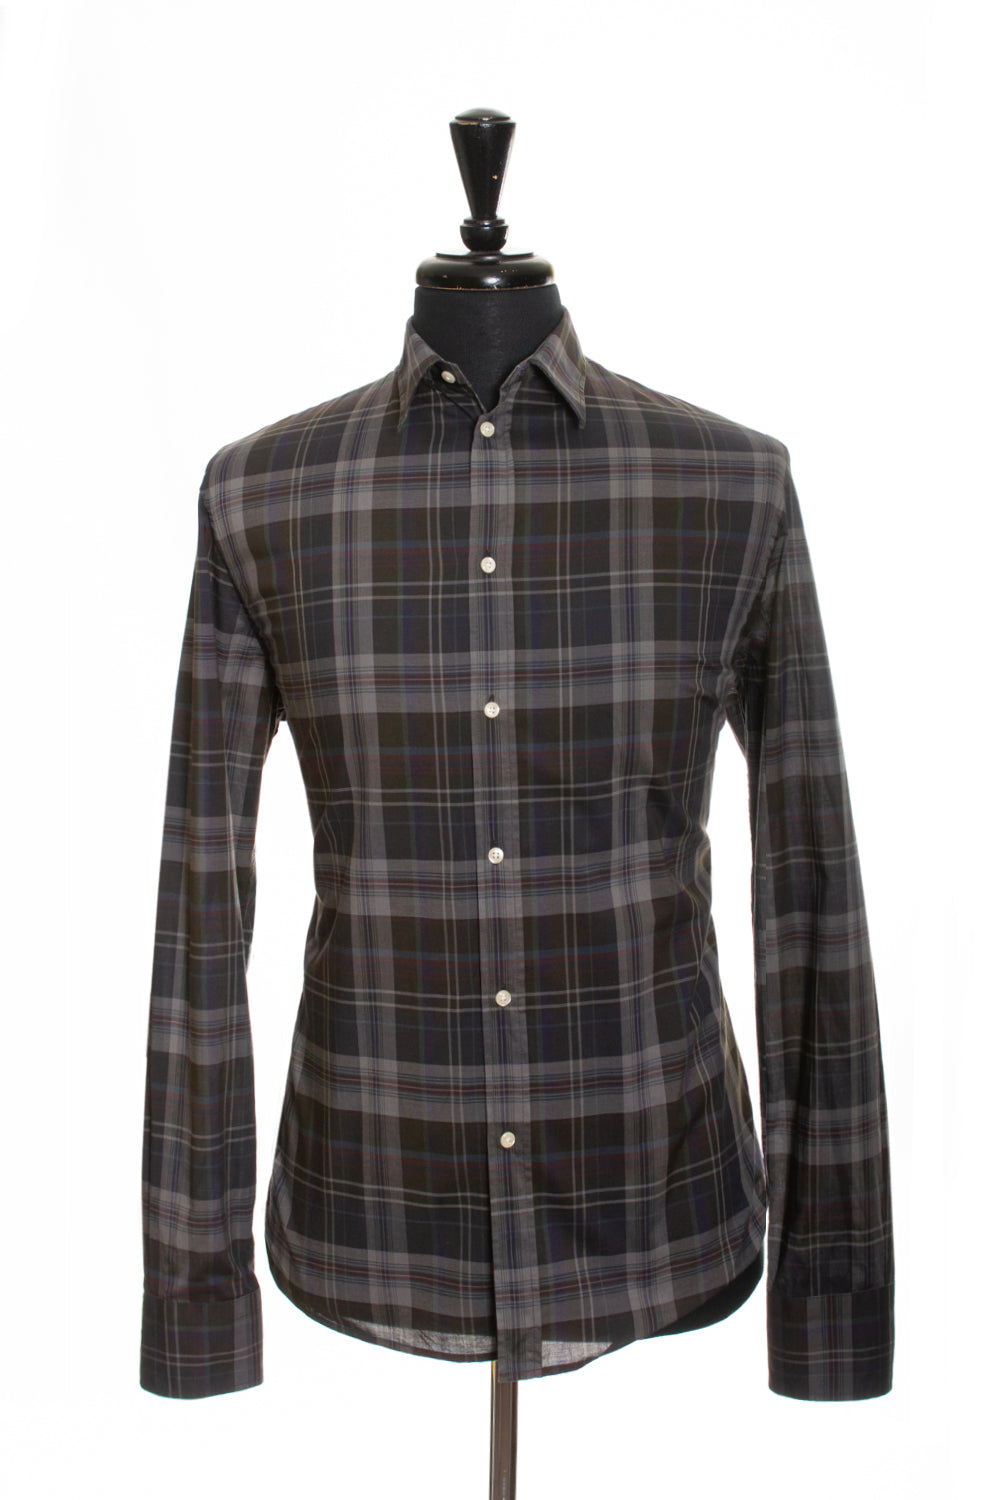 Filippa K Grey Plaid Regular Fit Casual Shirt for Luxmrkt.com Menswear Consignment Edmonton